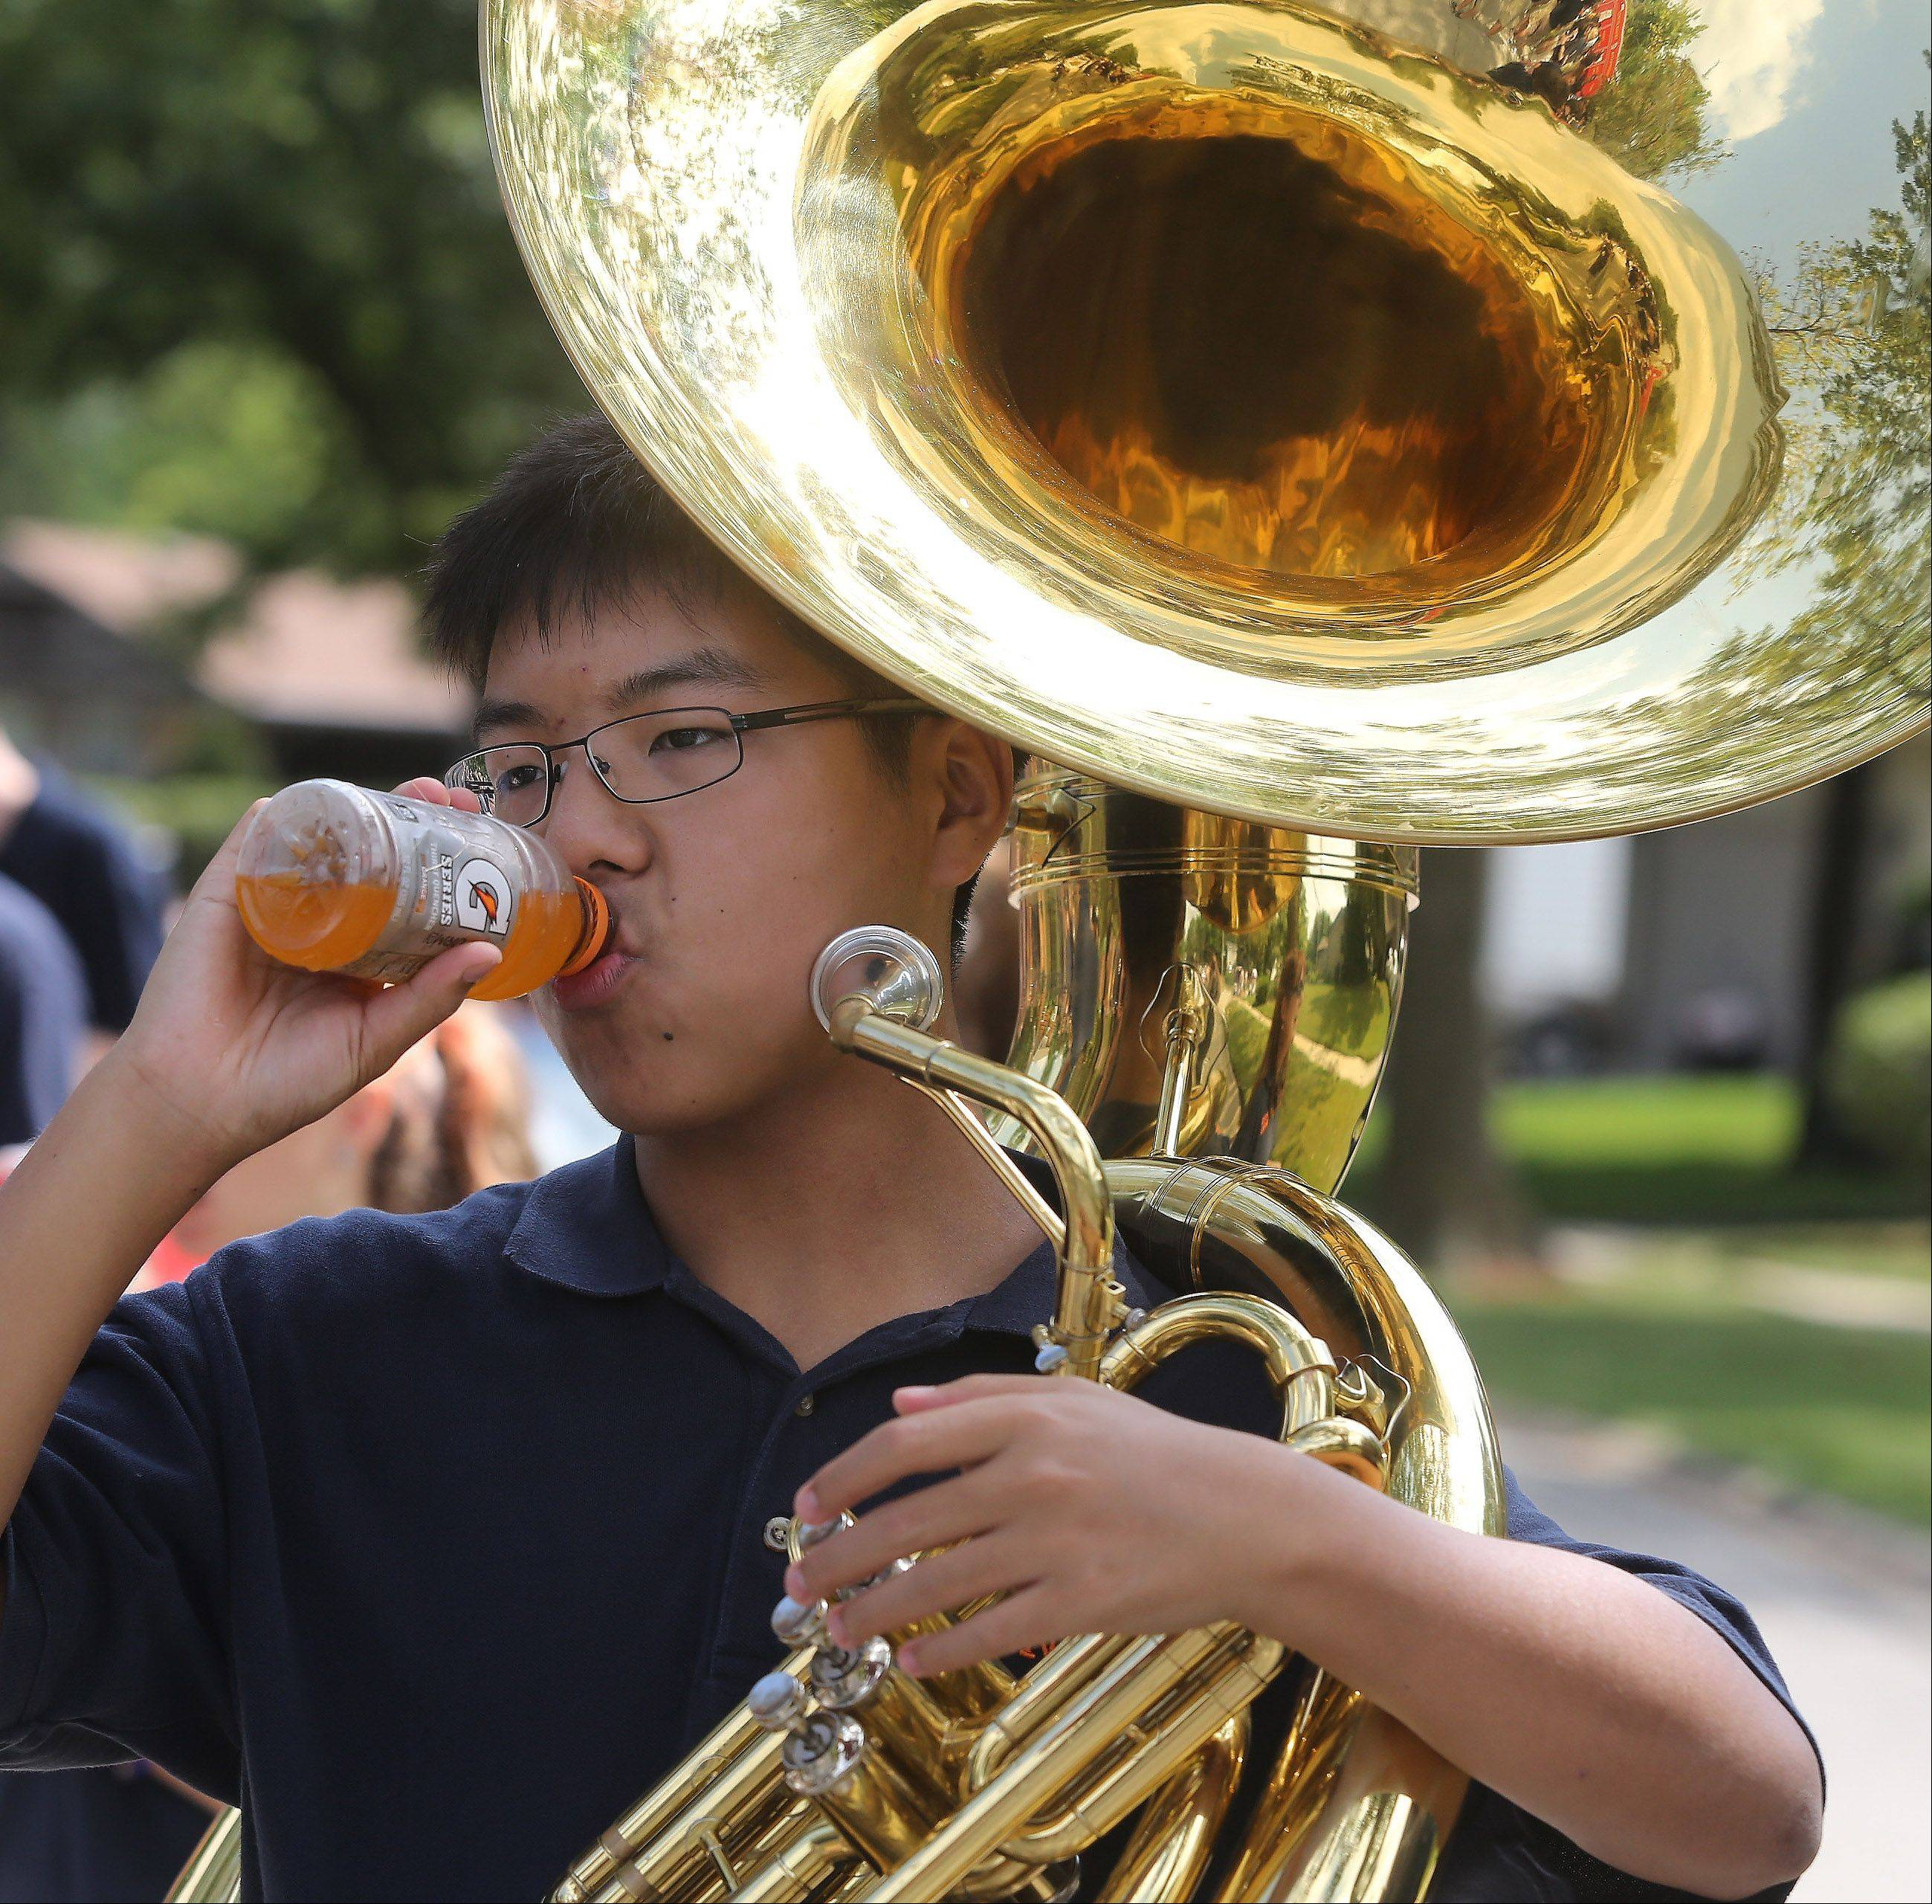 Buffalo Grove High School marching band member Christian Yi tries to keep cool Sunday as he drinks Gatorade while holding his sousaphone during the Buffalo Grove Days parade.